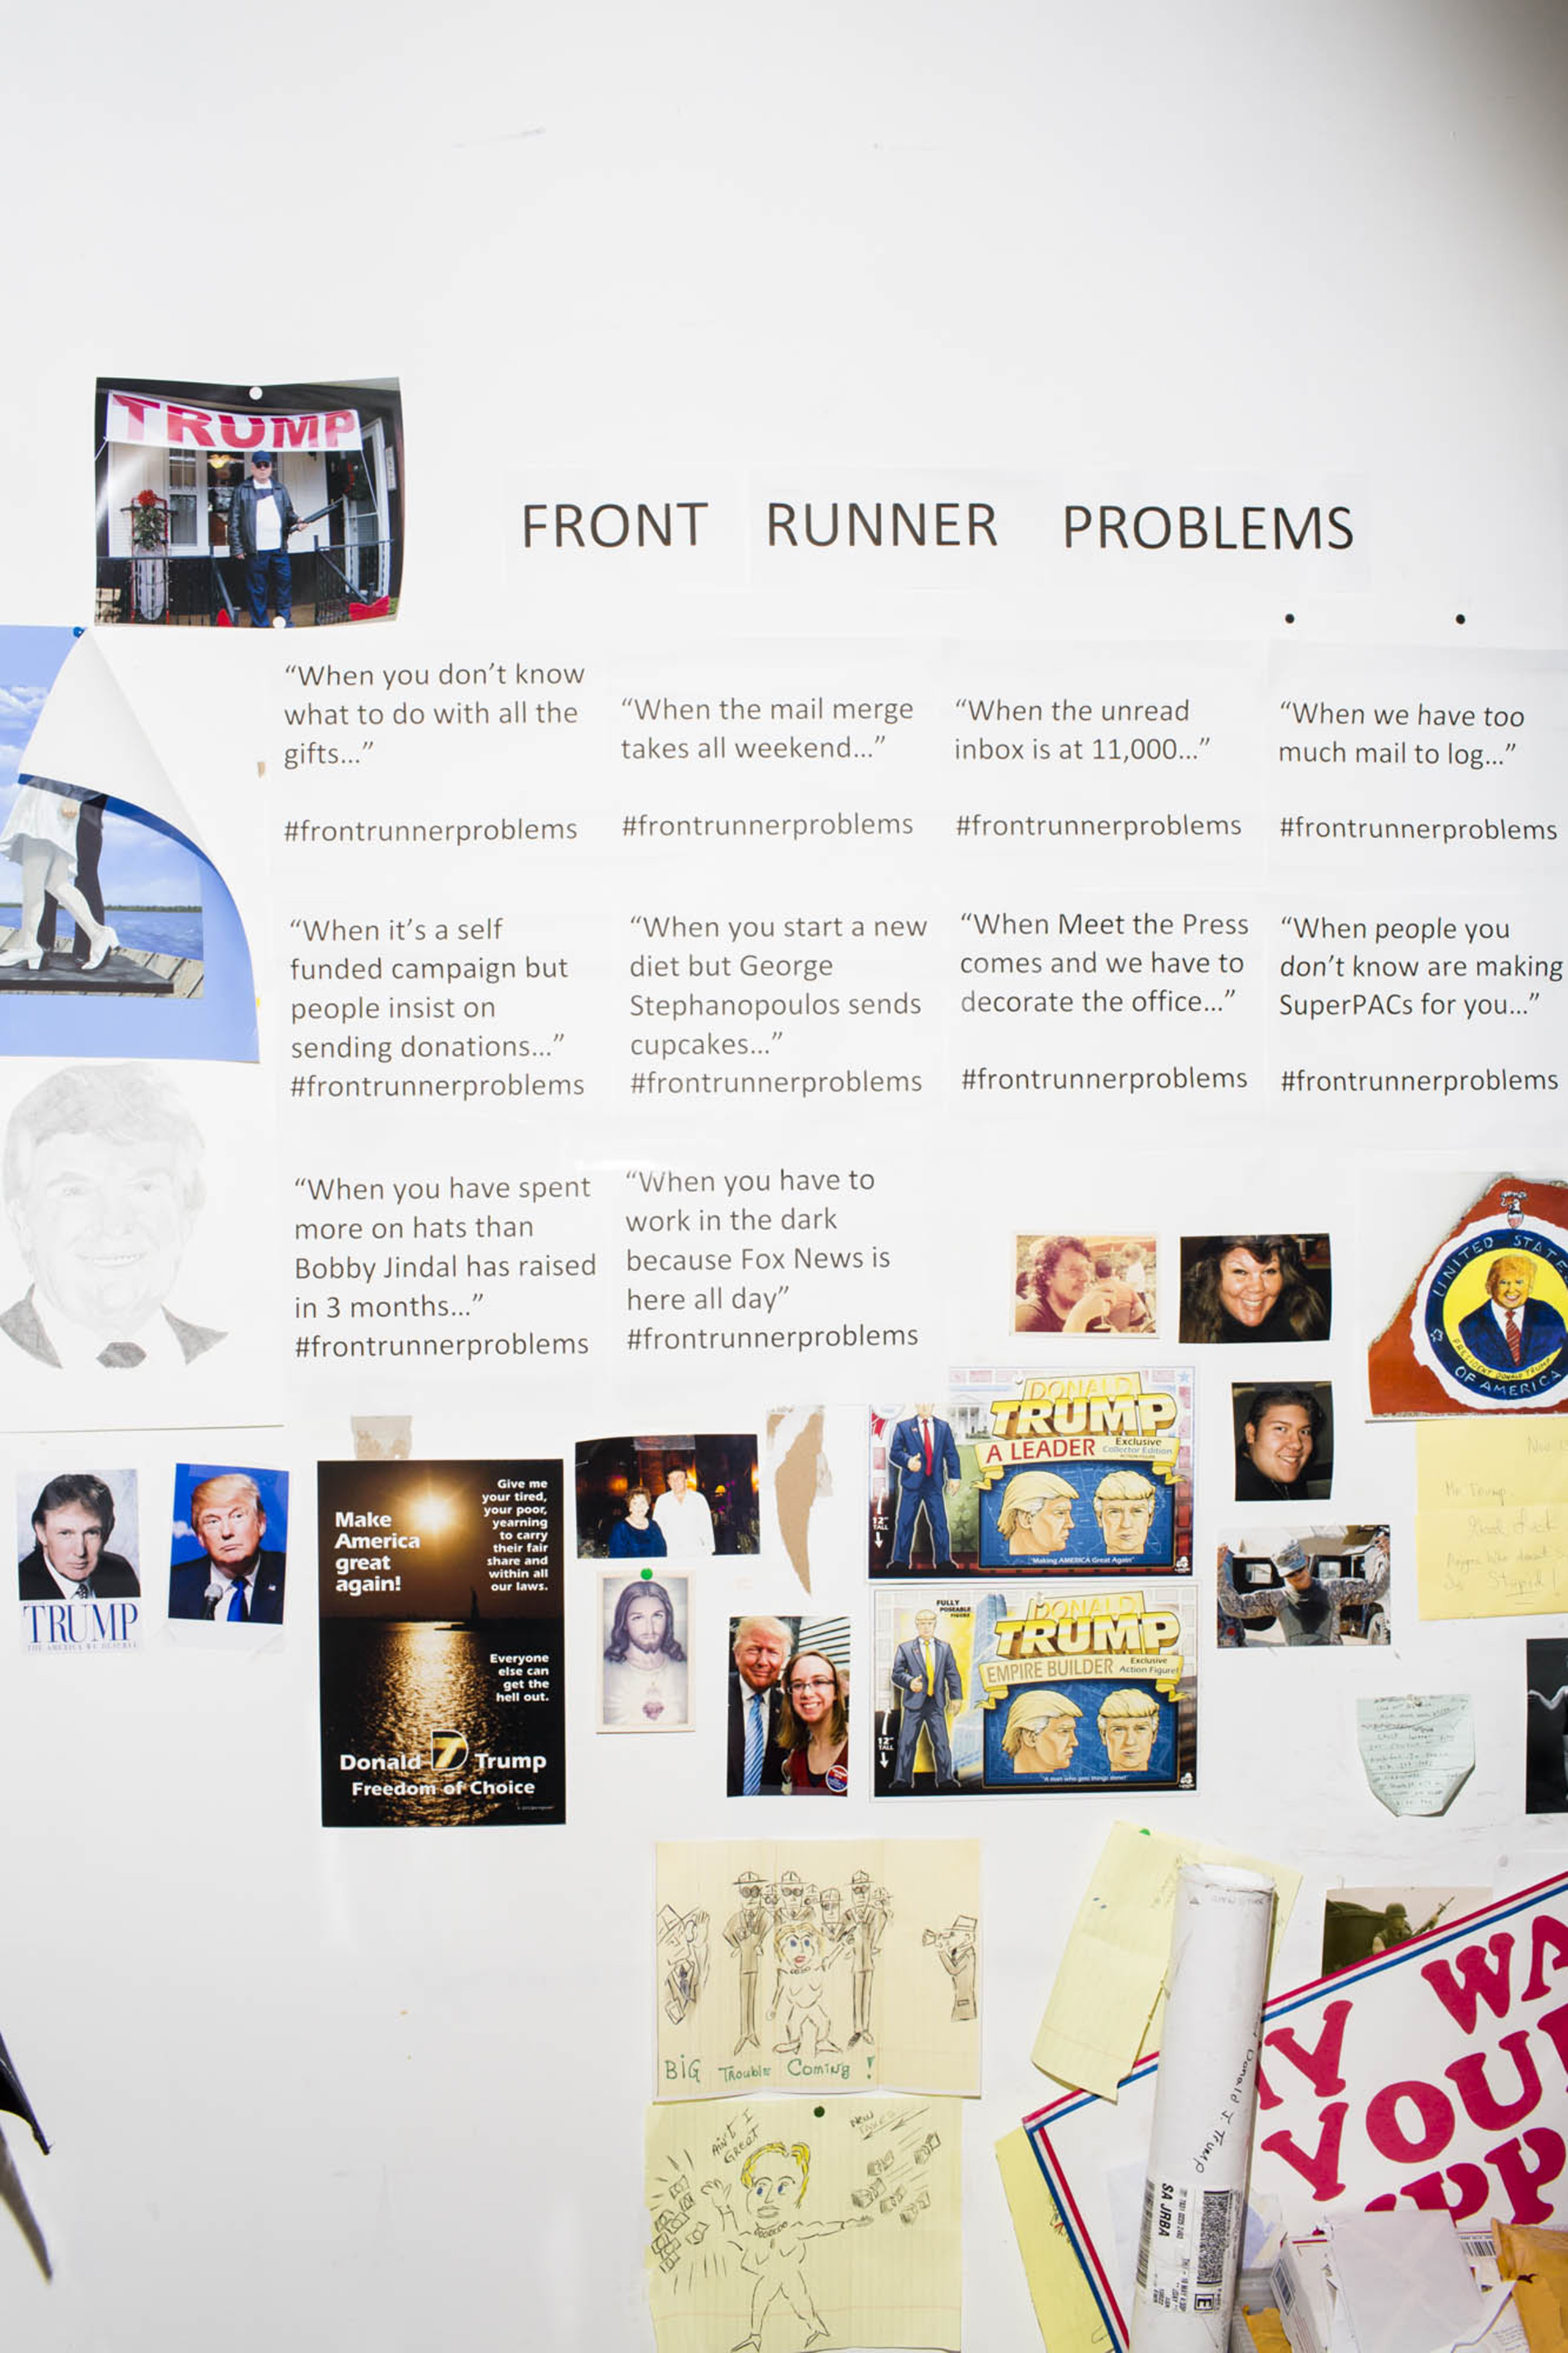 A wall decorated with  Front Runner Problems  inside the campaign headquarters of Donald Trump on May 24, 2016, in Trump Tower in New York City.